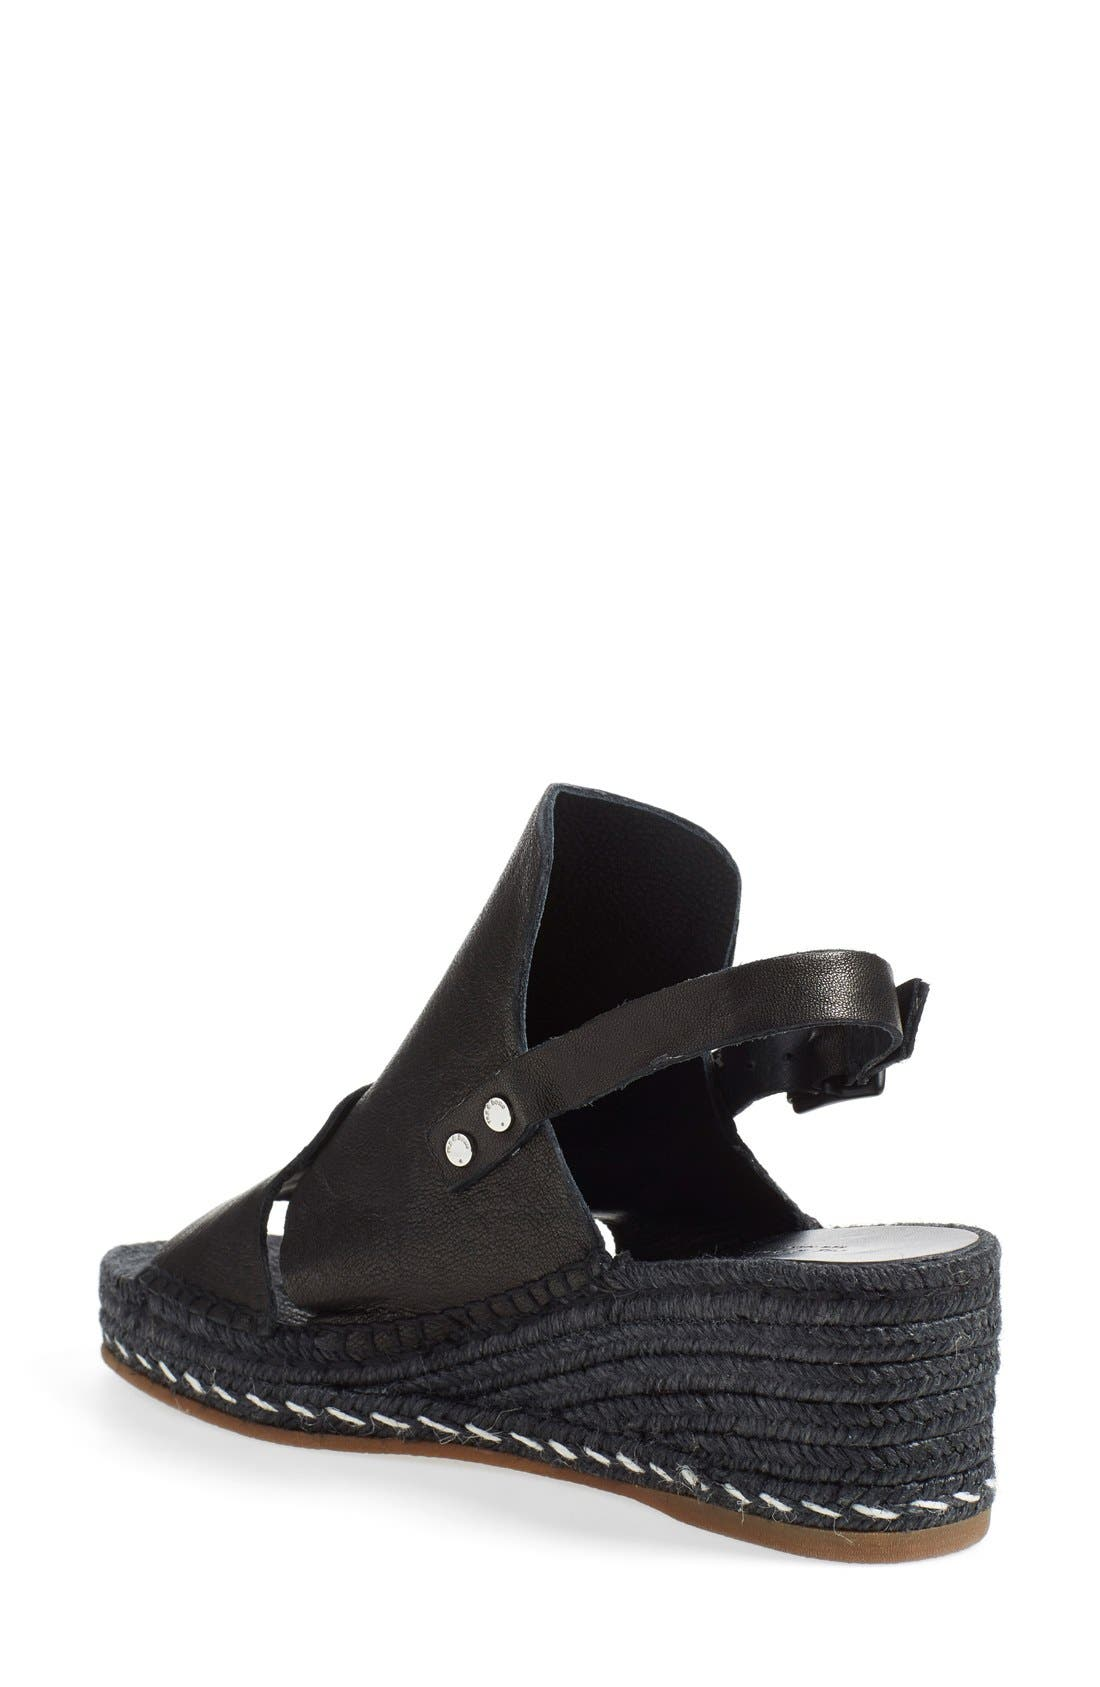 'Sayre II' Espadrille Wedge Sandal,                             Alternate thumbnail 2, color,                             Black